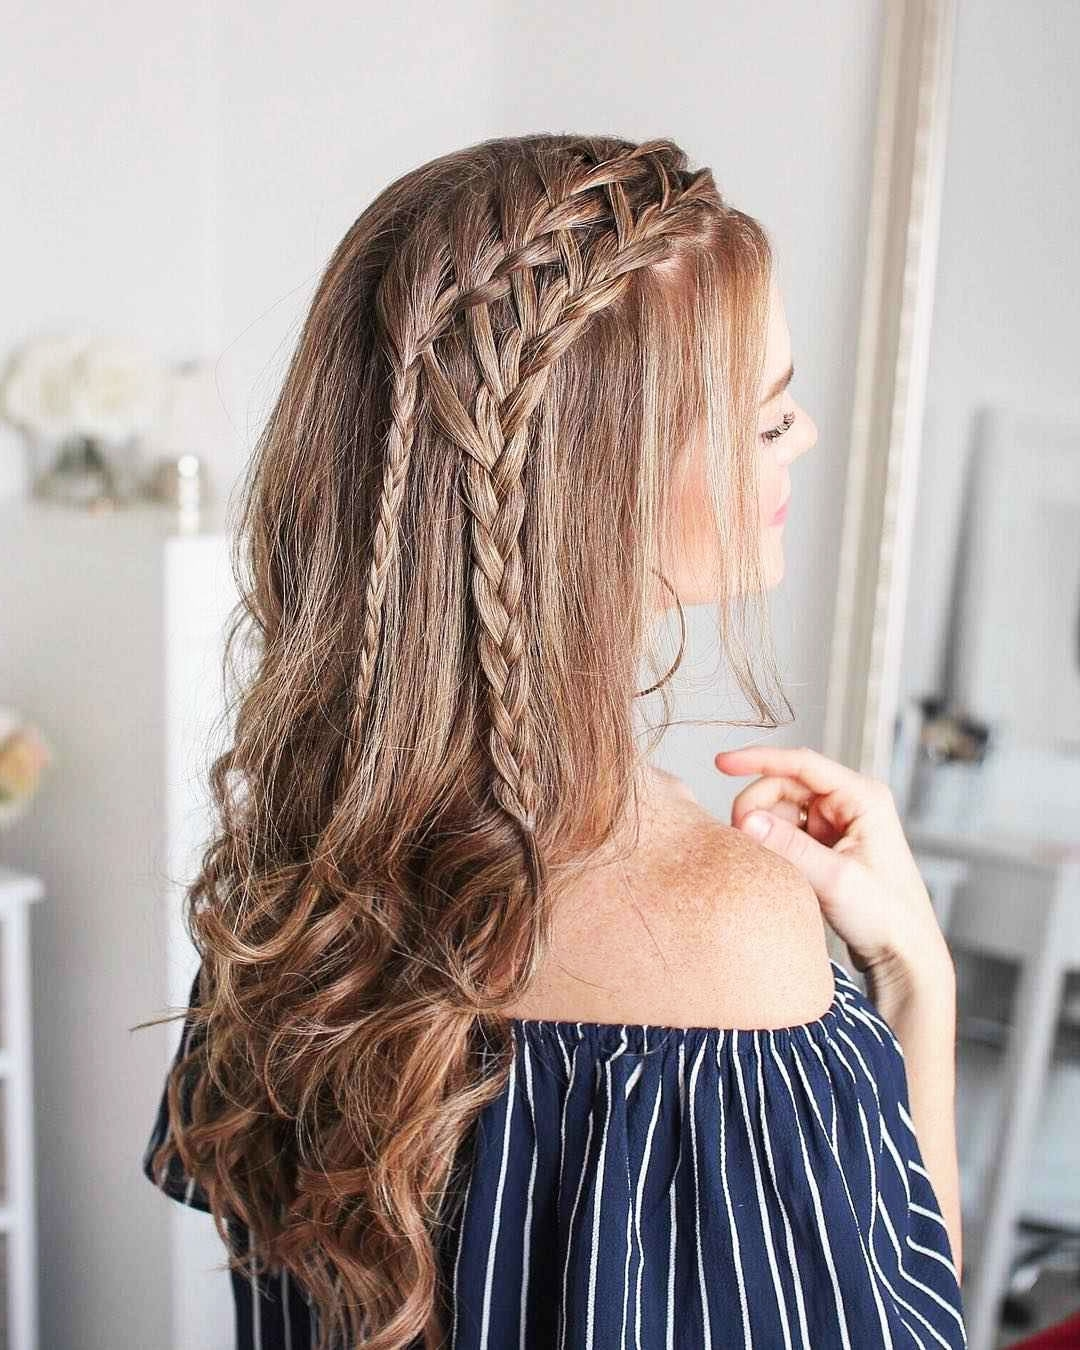 61 Latest Hairstyles For Graduation Ideas 2020 Hairstyles For Graduation For Medium Length Hair